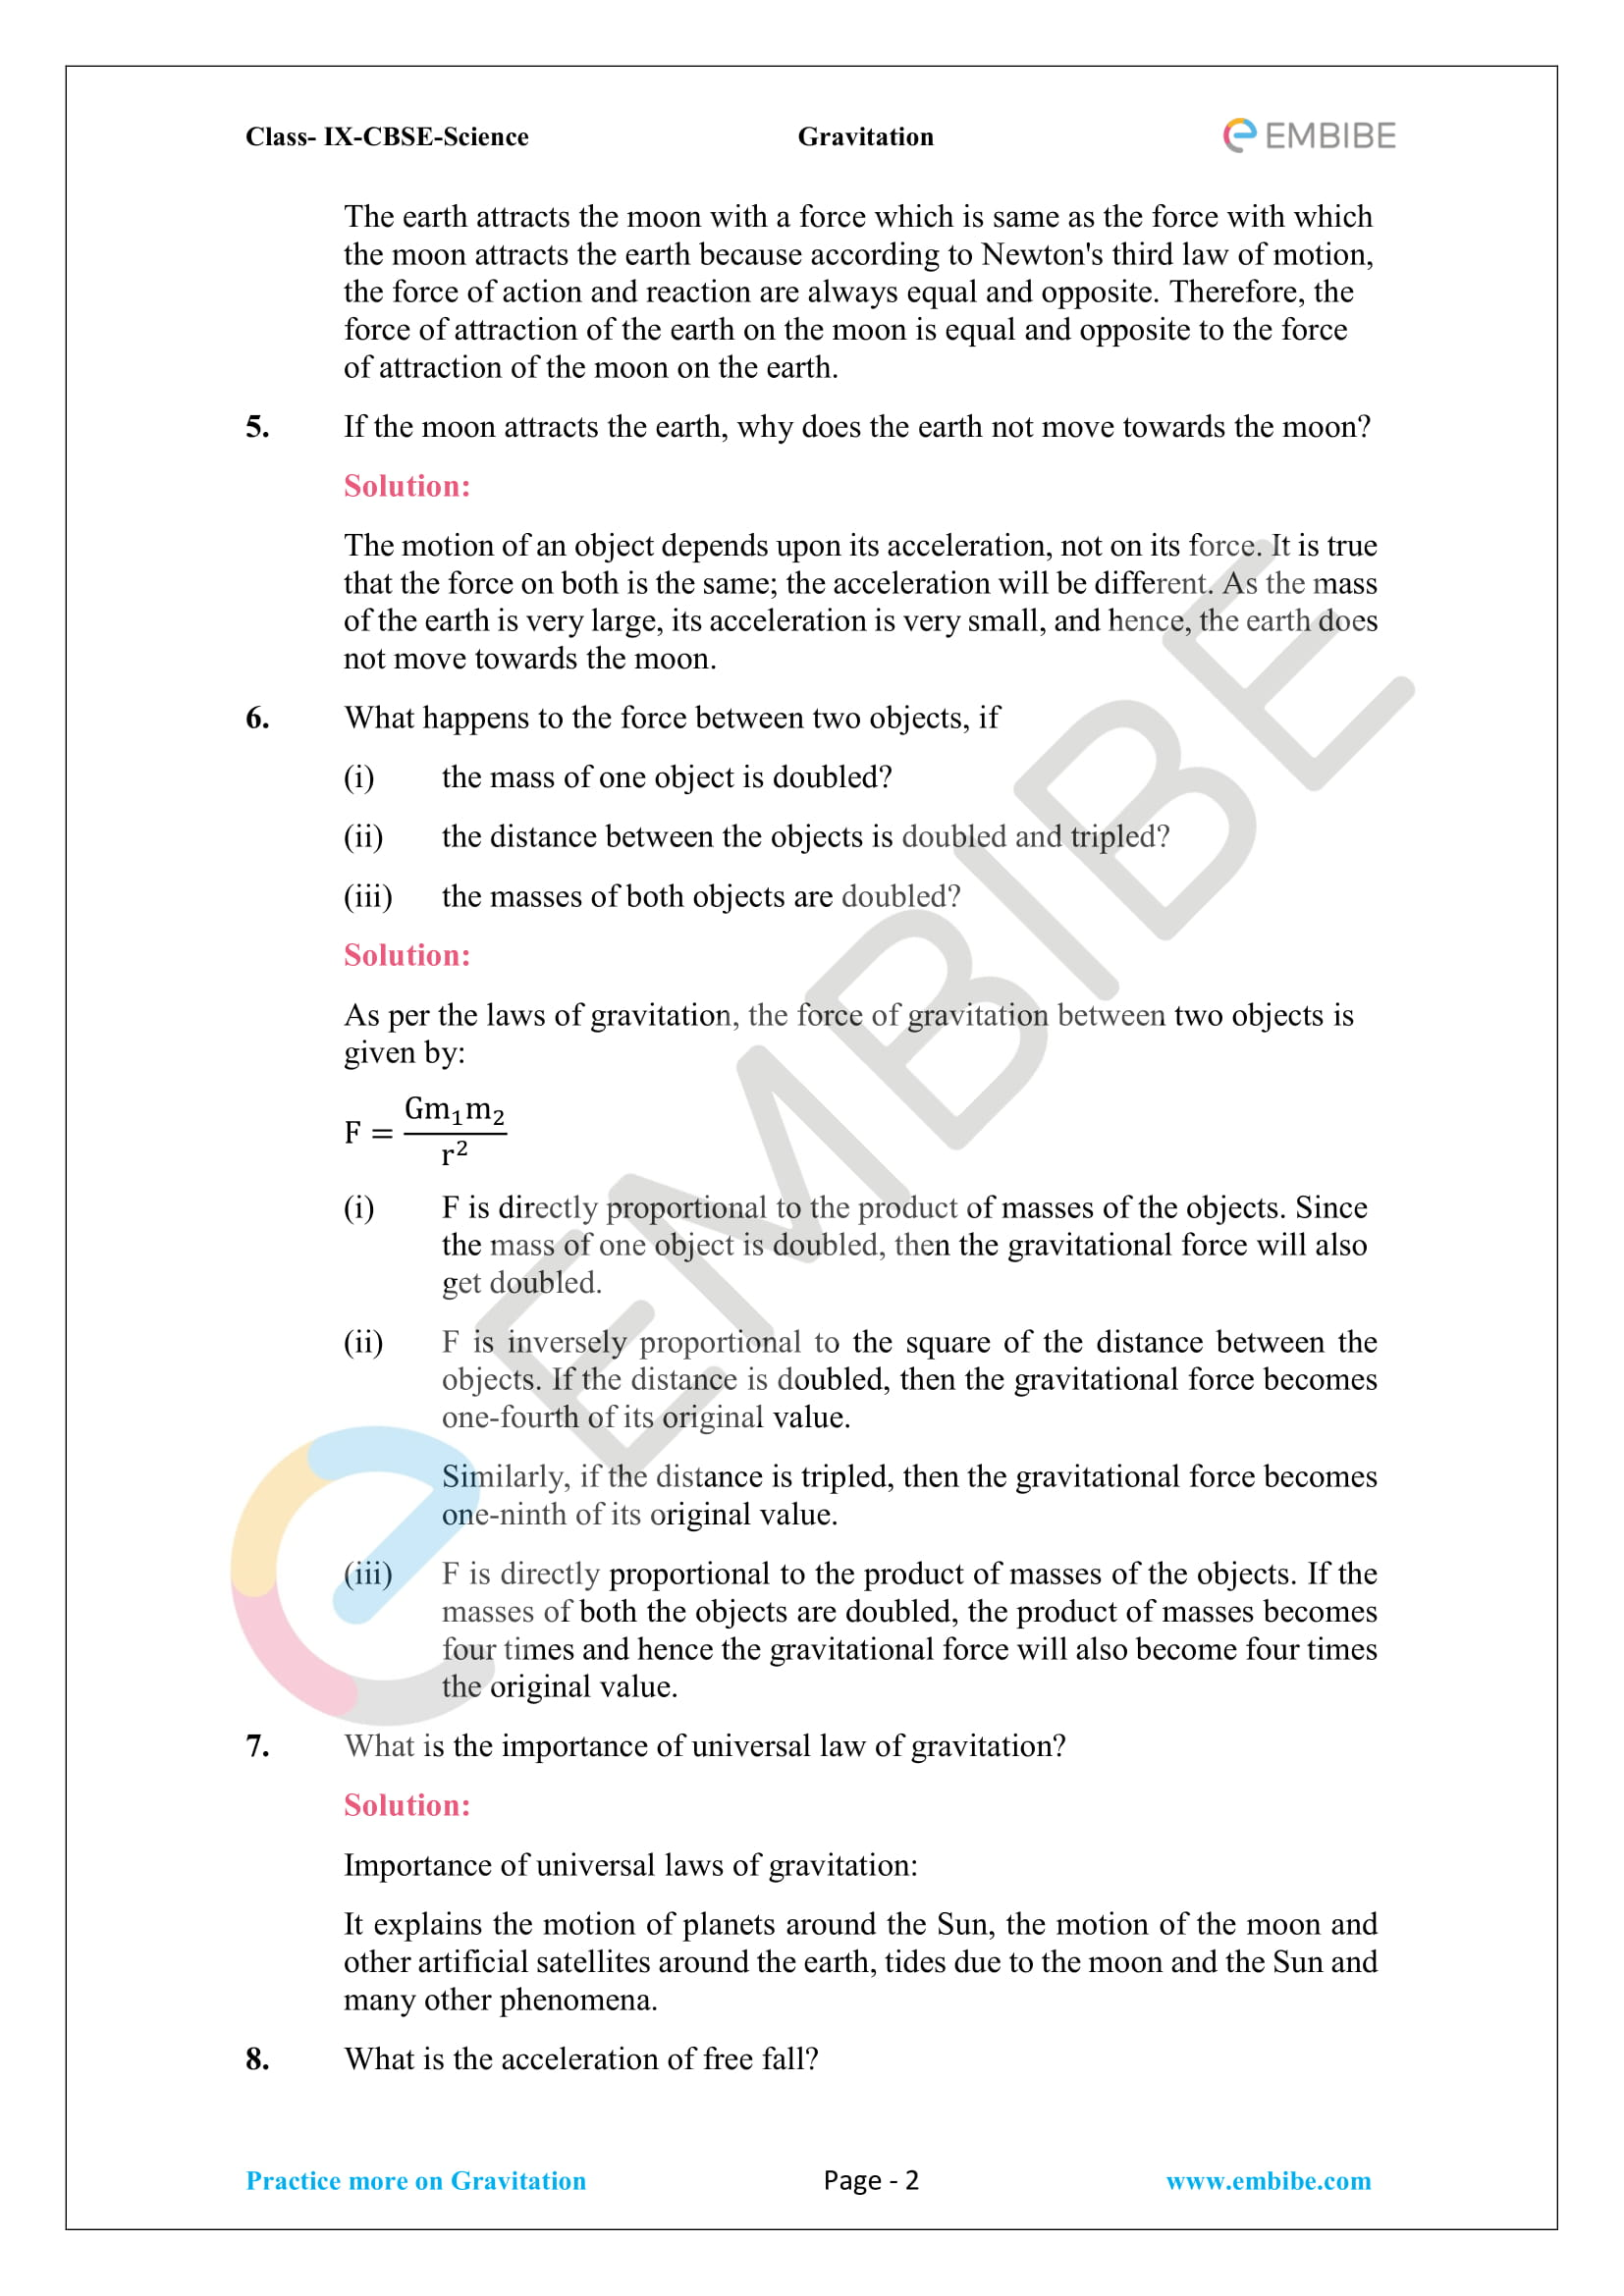 CBSE NCERT Solutions For Class 9 Science Chapter 10